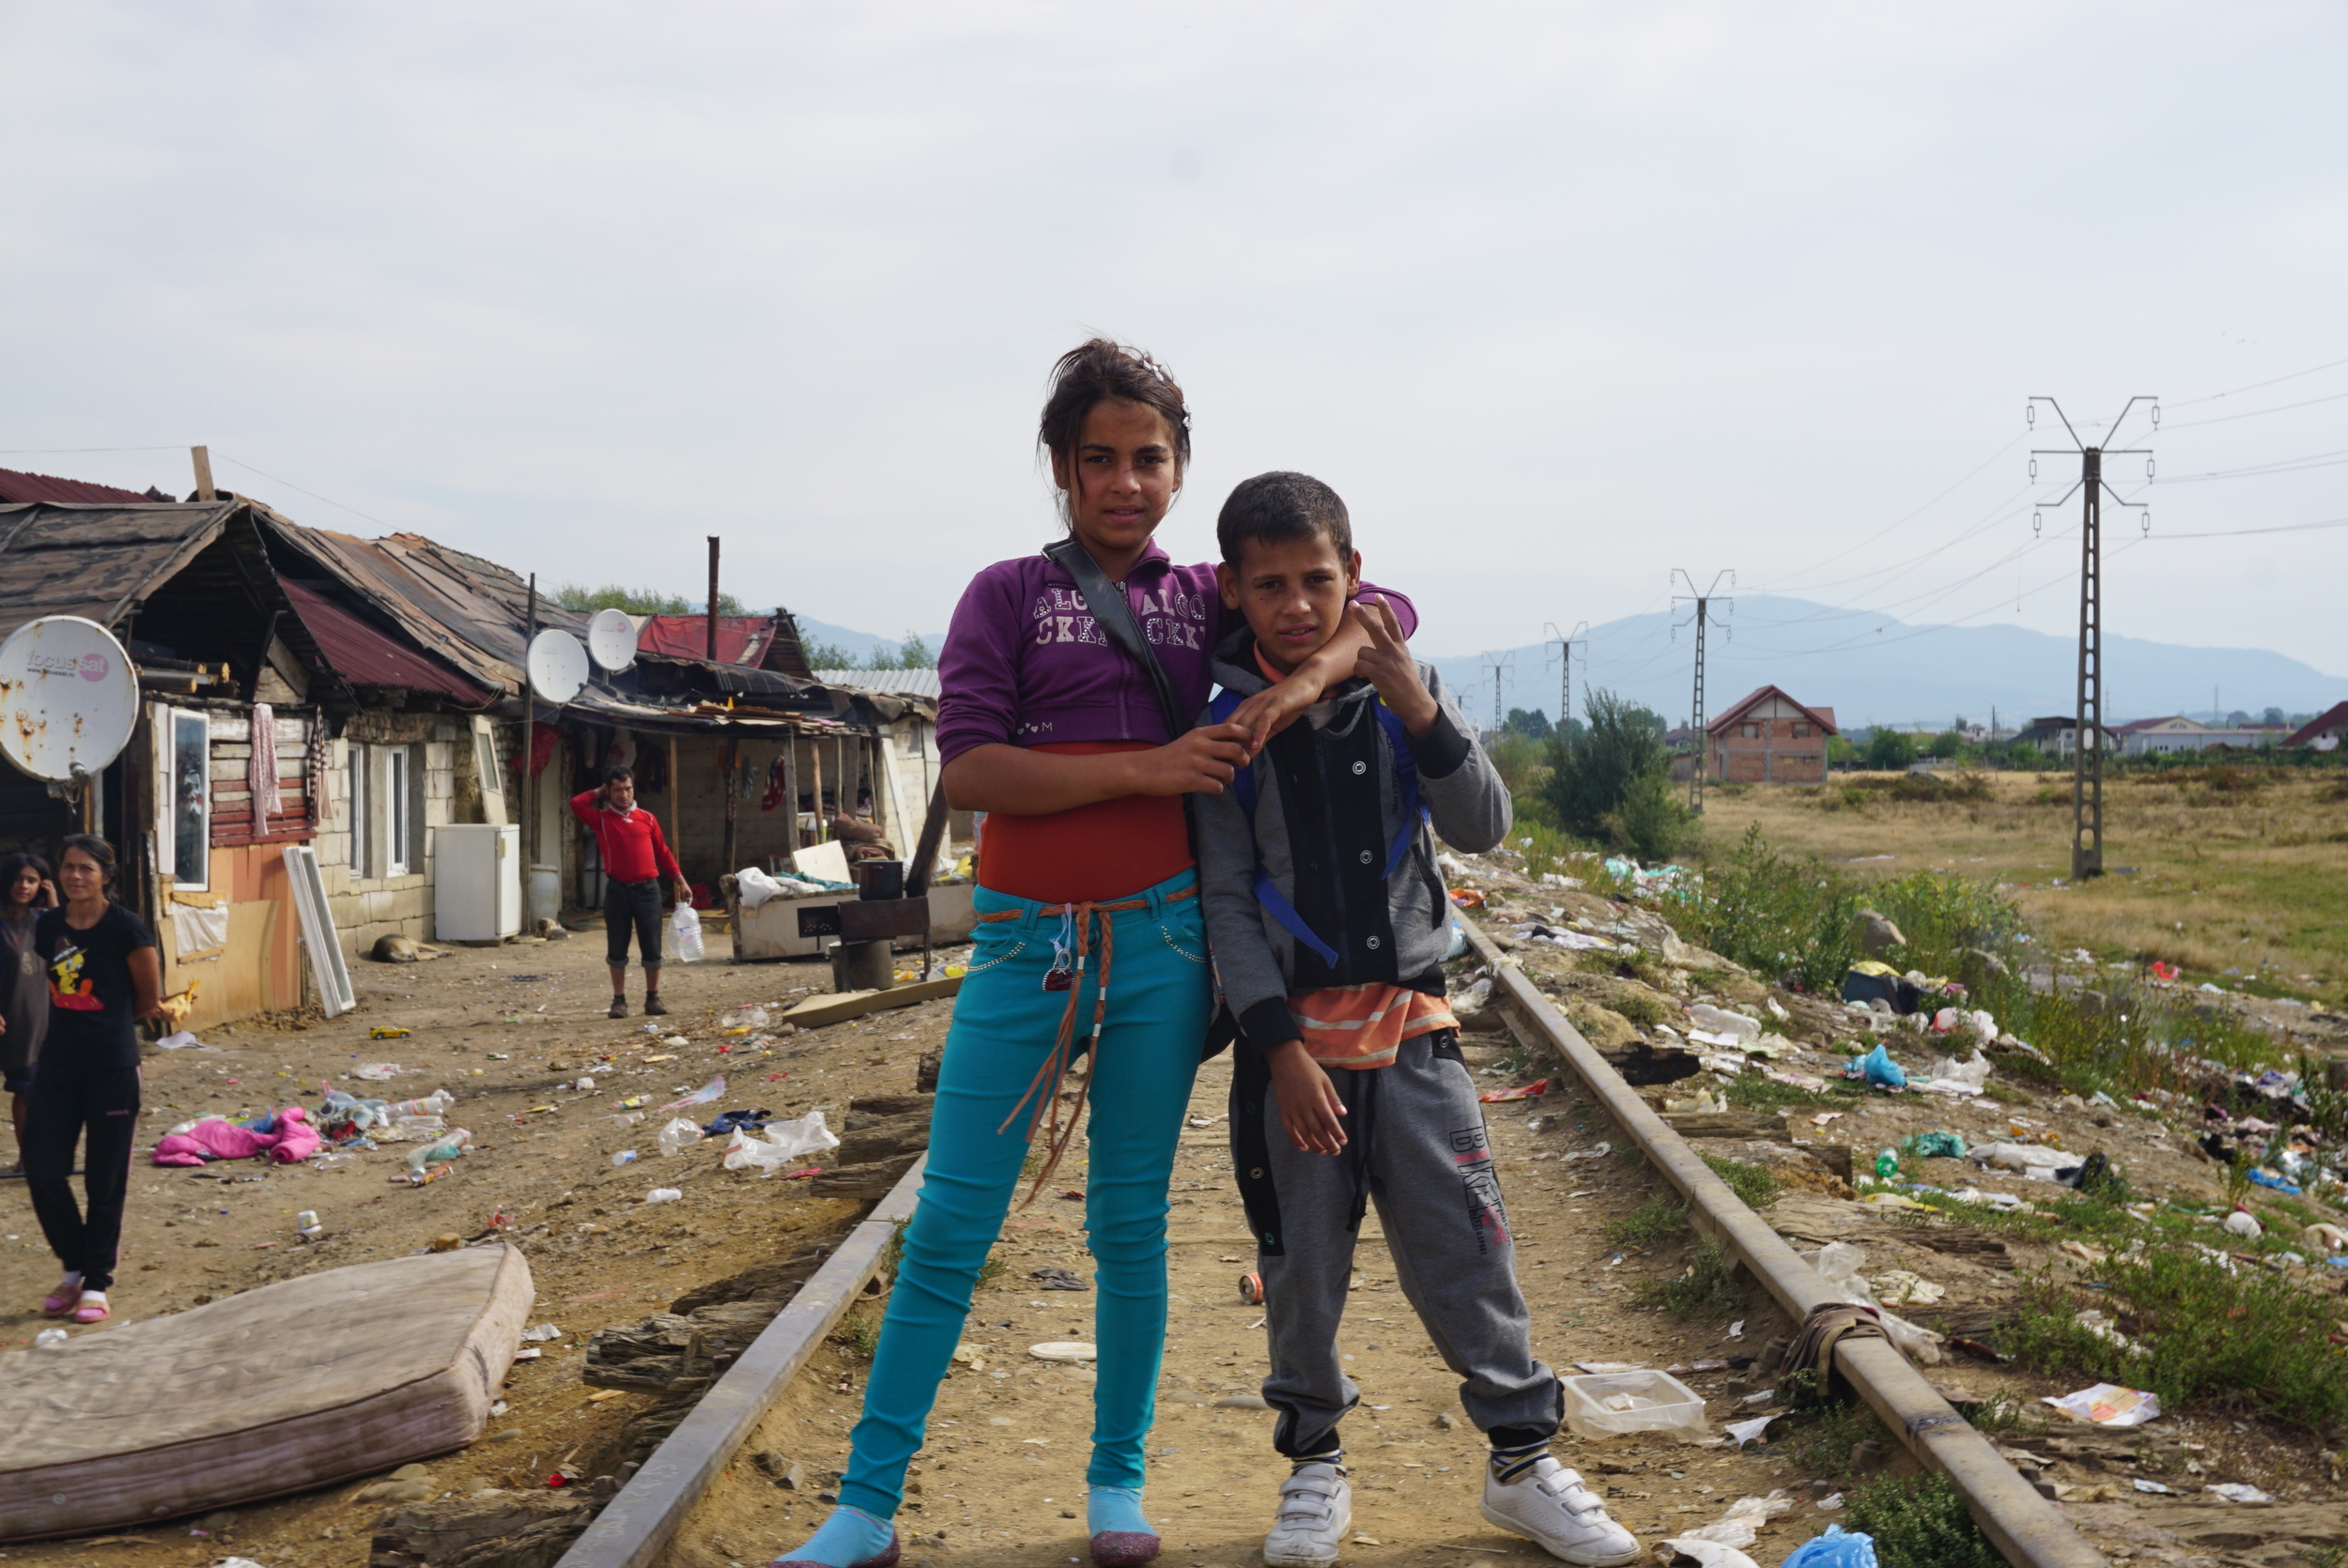 Walking through the Craica slums, where the Roma children we helped live - you can see the horrible living conditions.